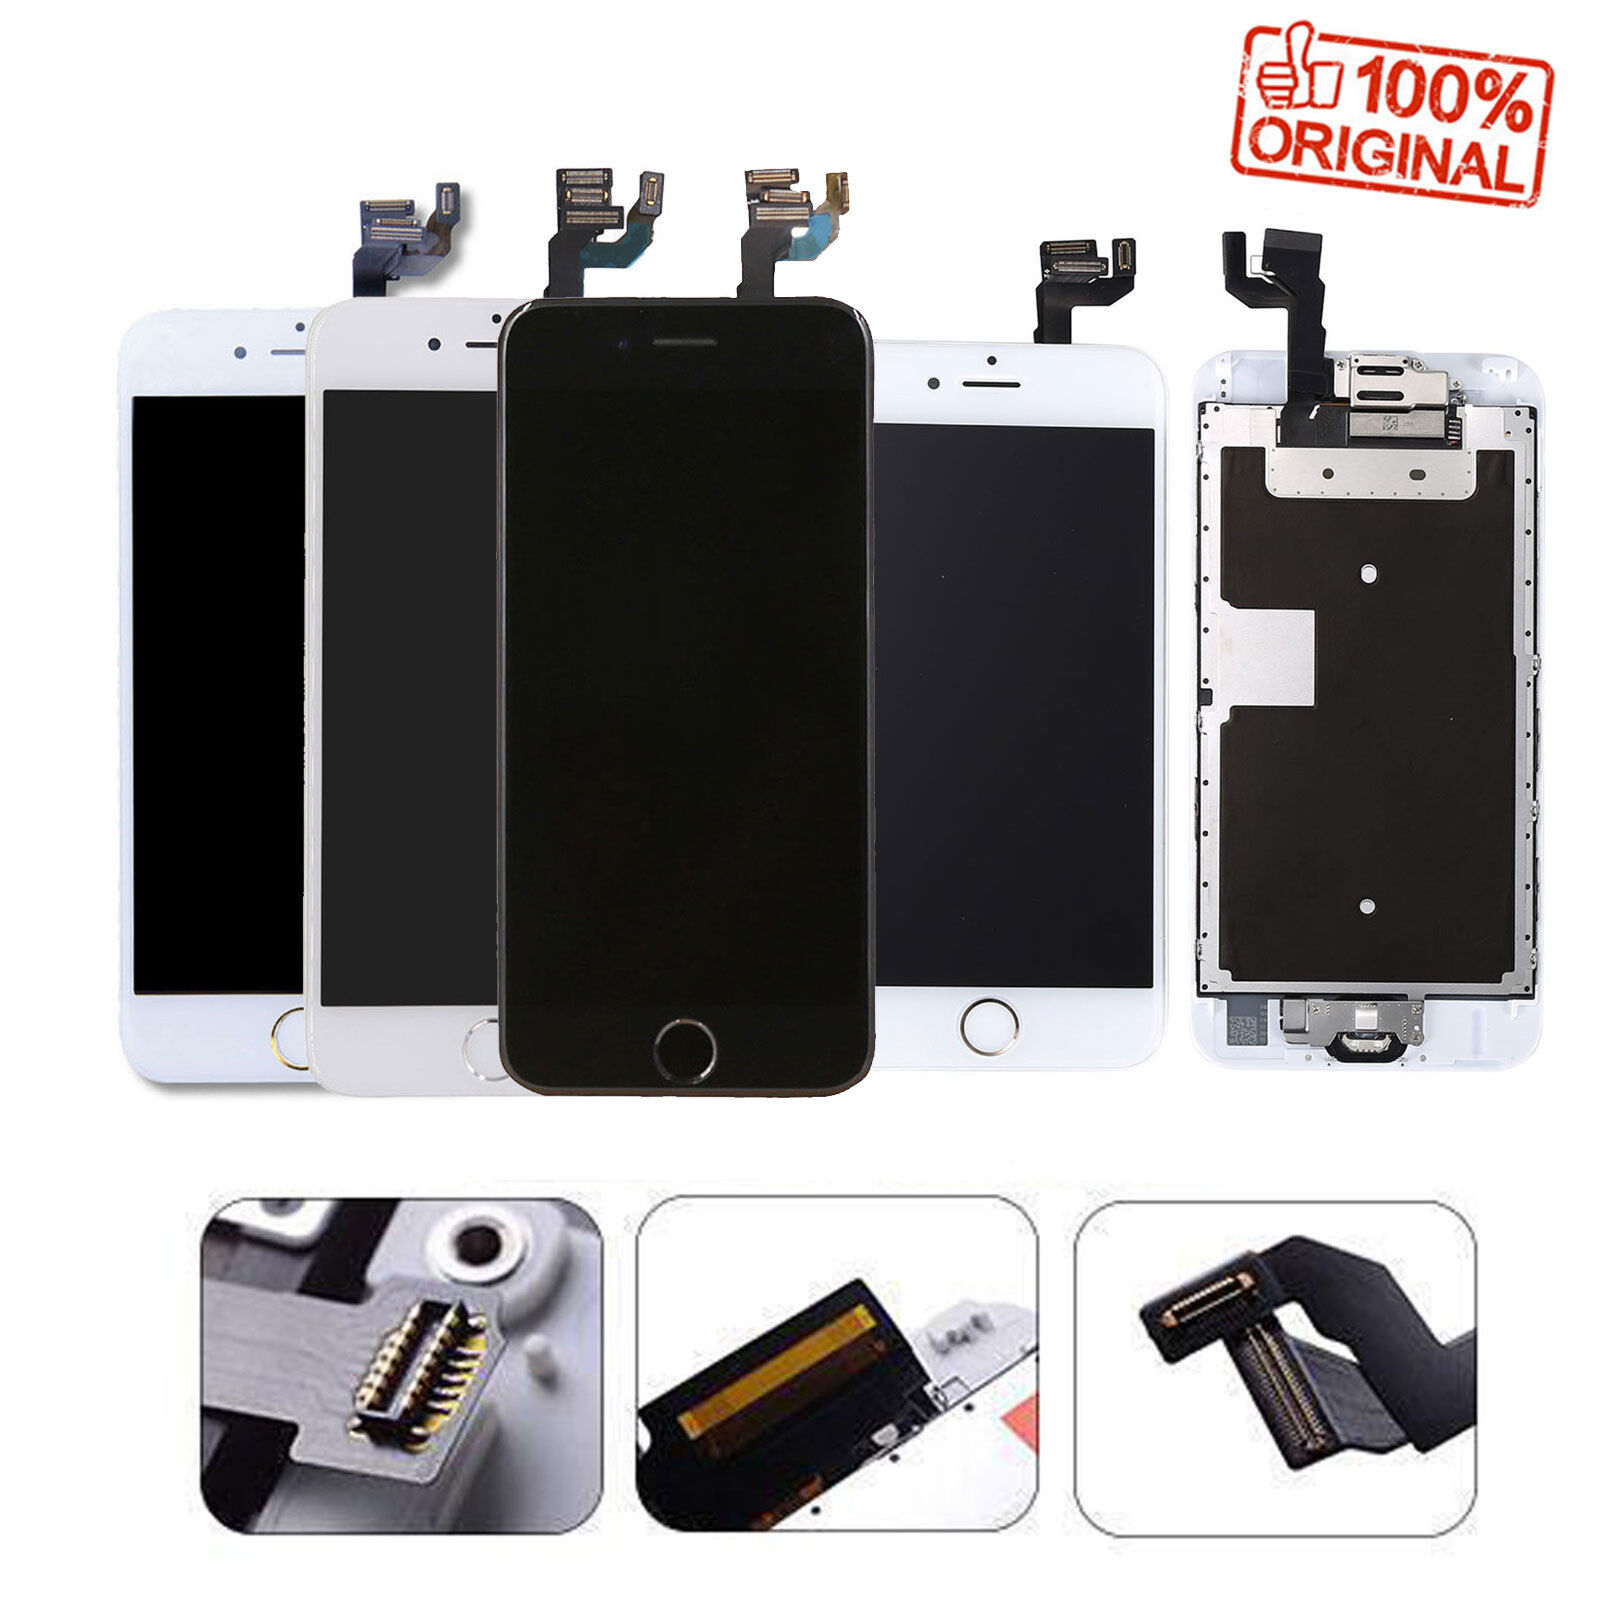 oem iphone 6 6s plus 6s lcd